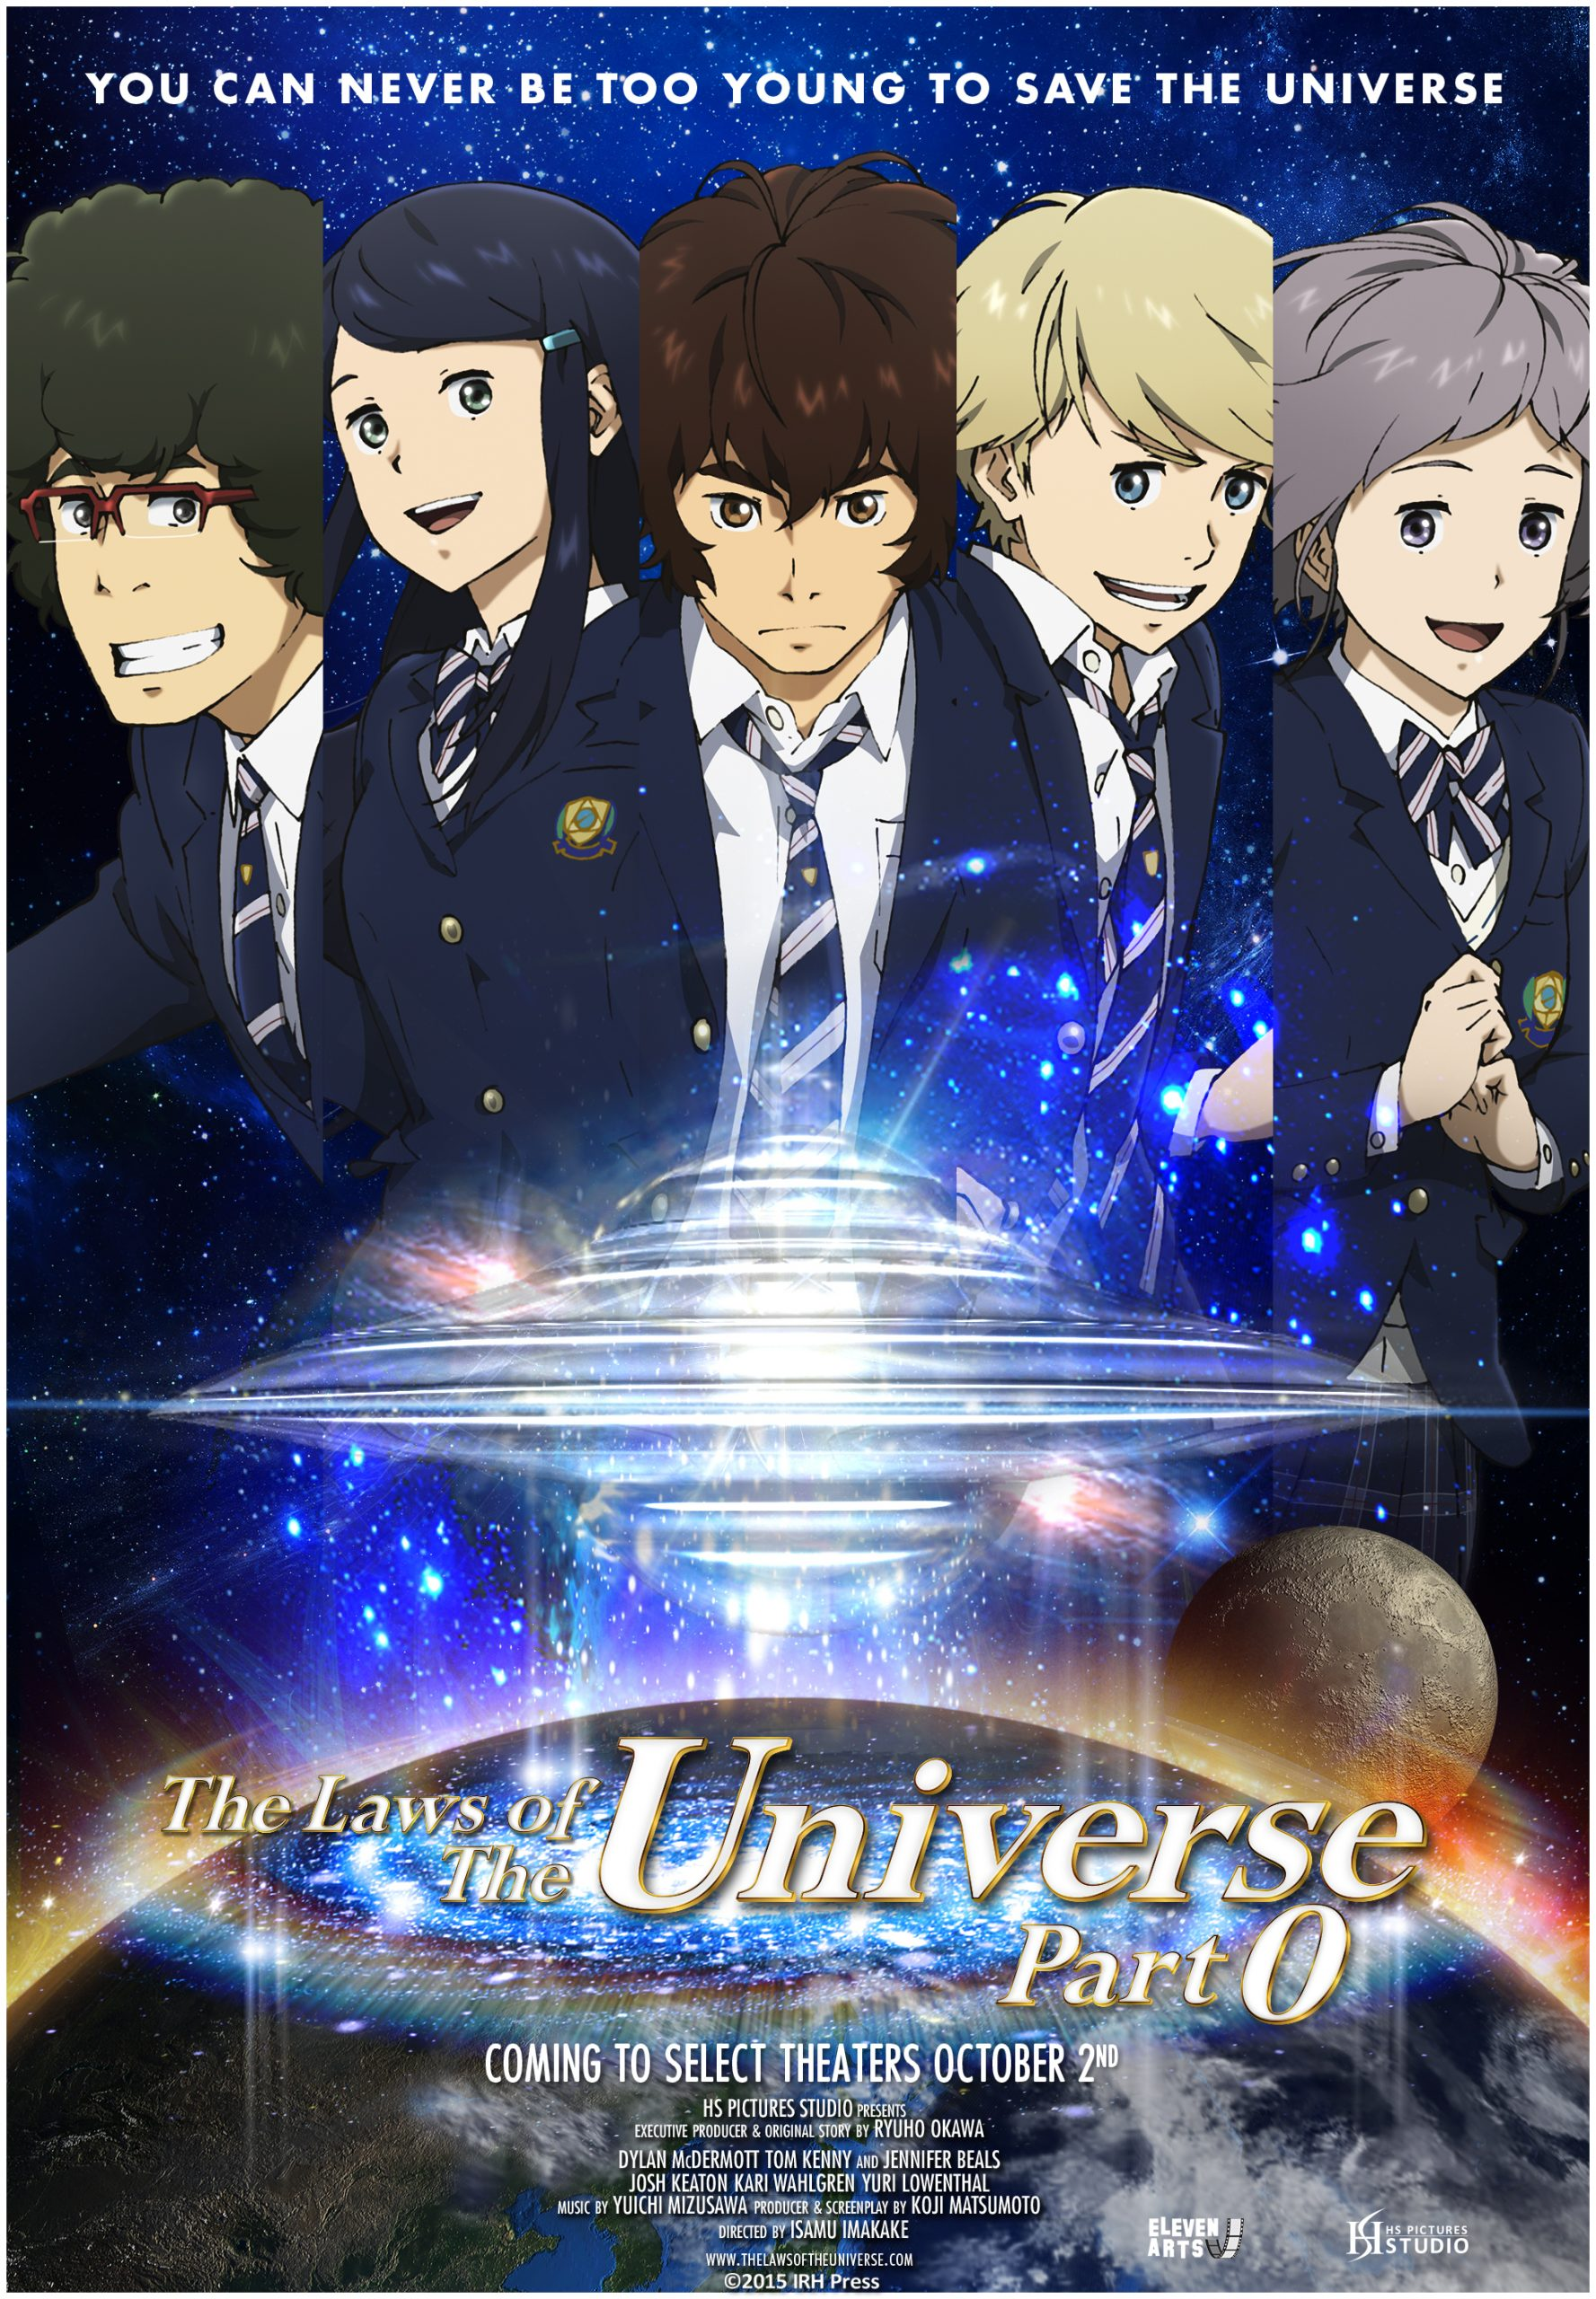 The Laws of The Universe: Part 0